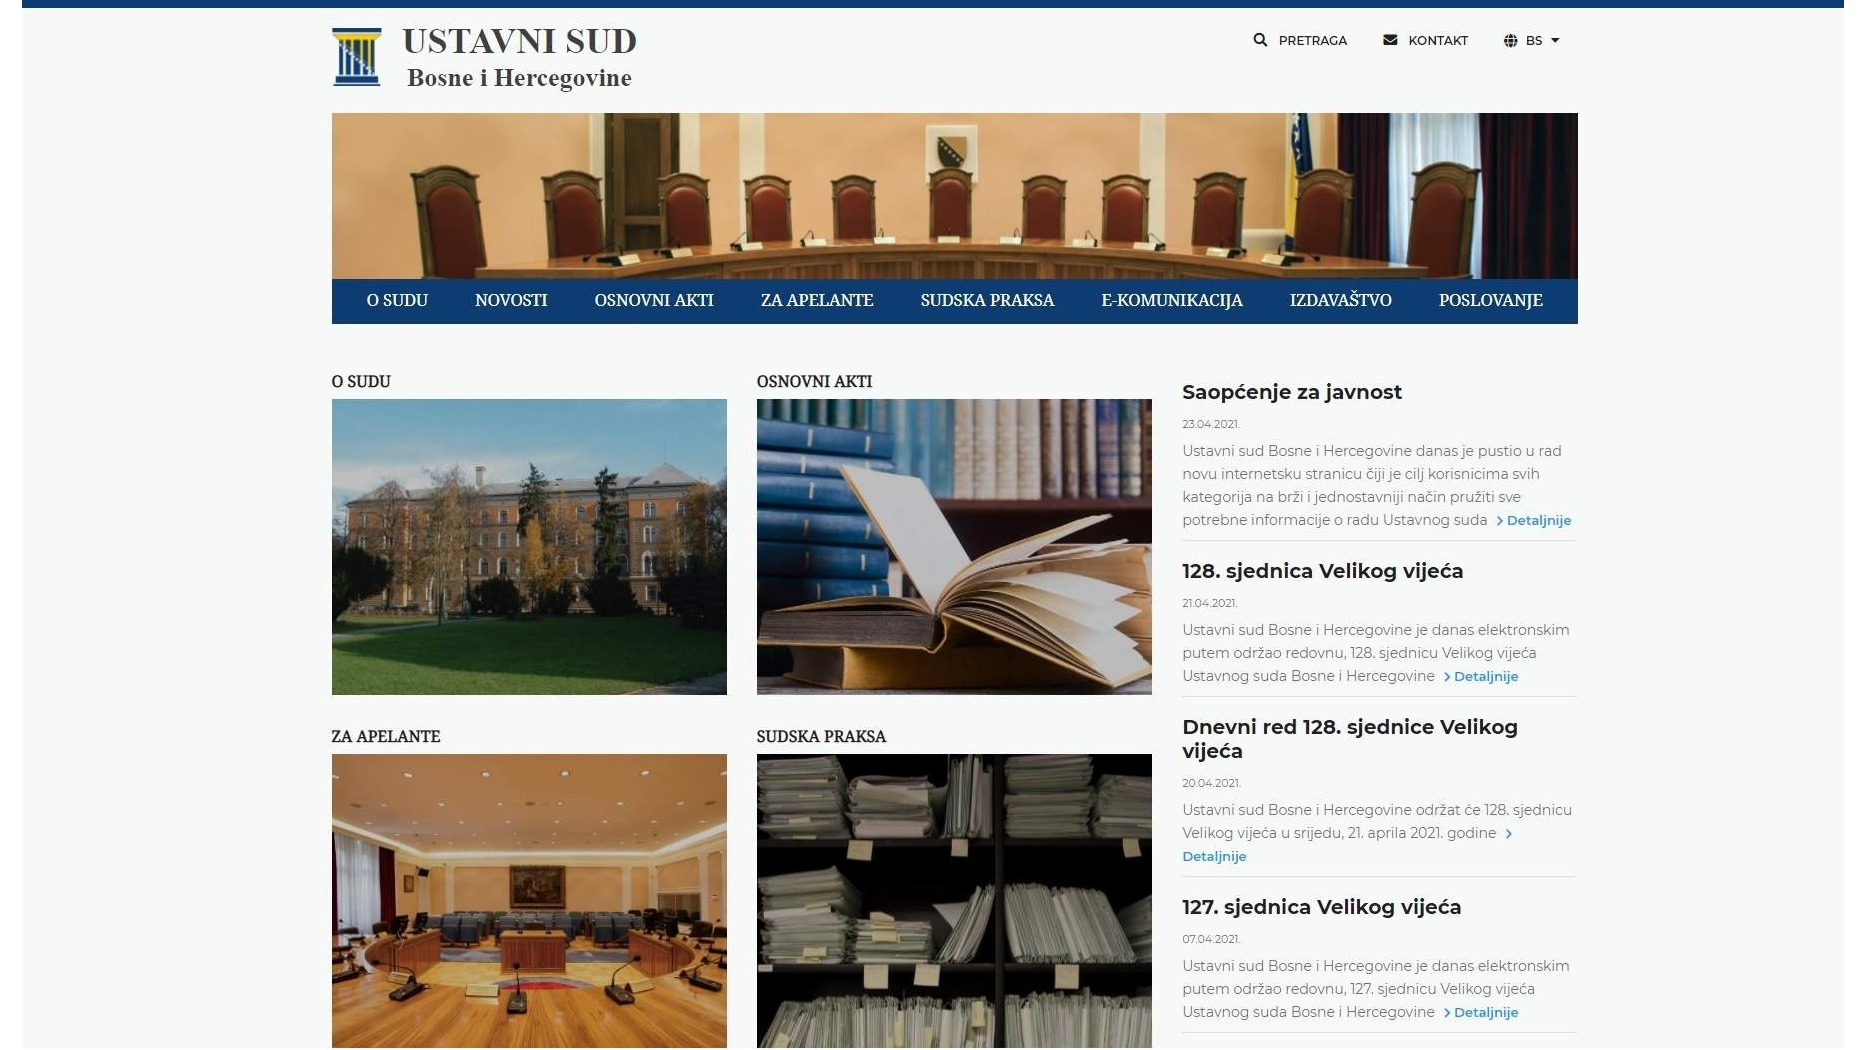 Website for the Constitutional Court of Bosnia and Herzegovina